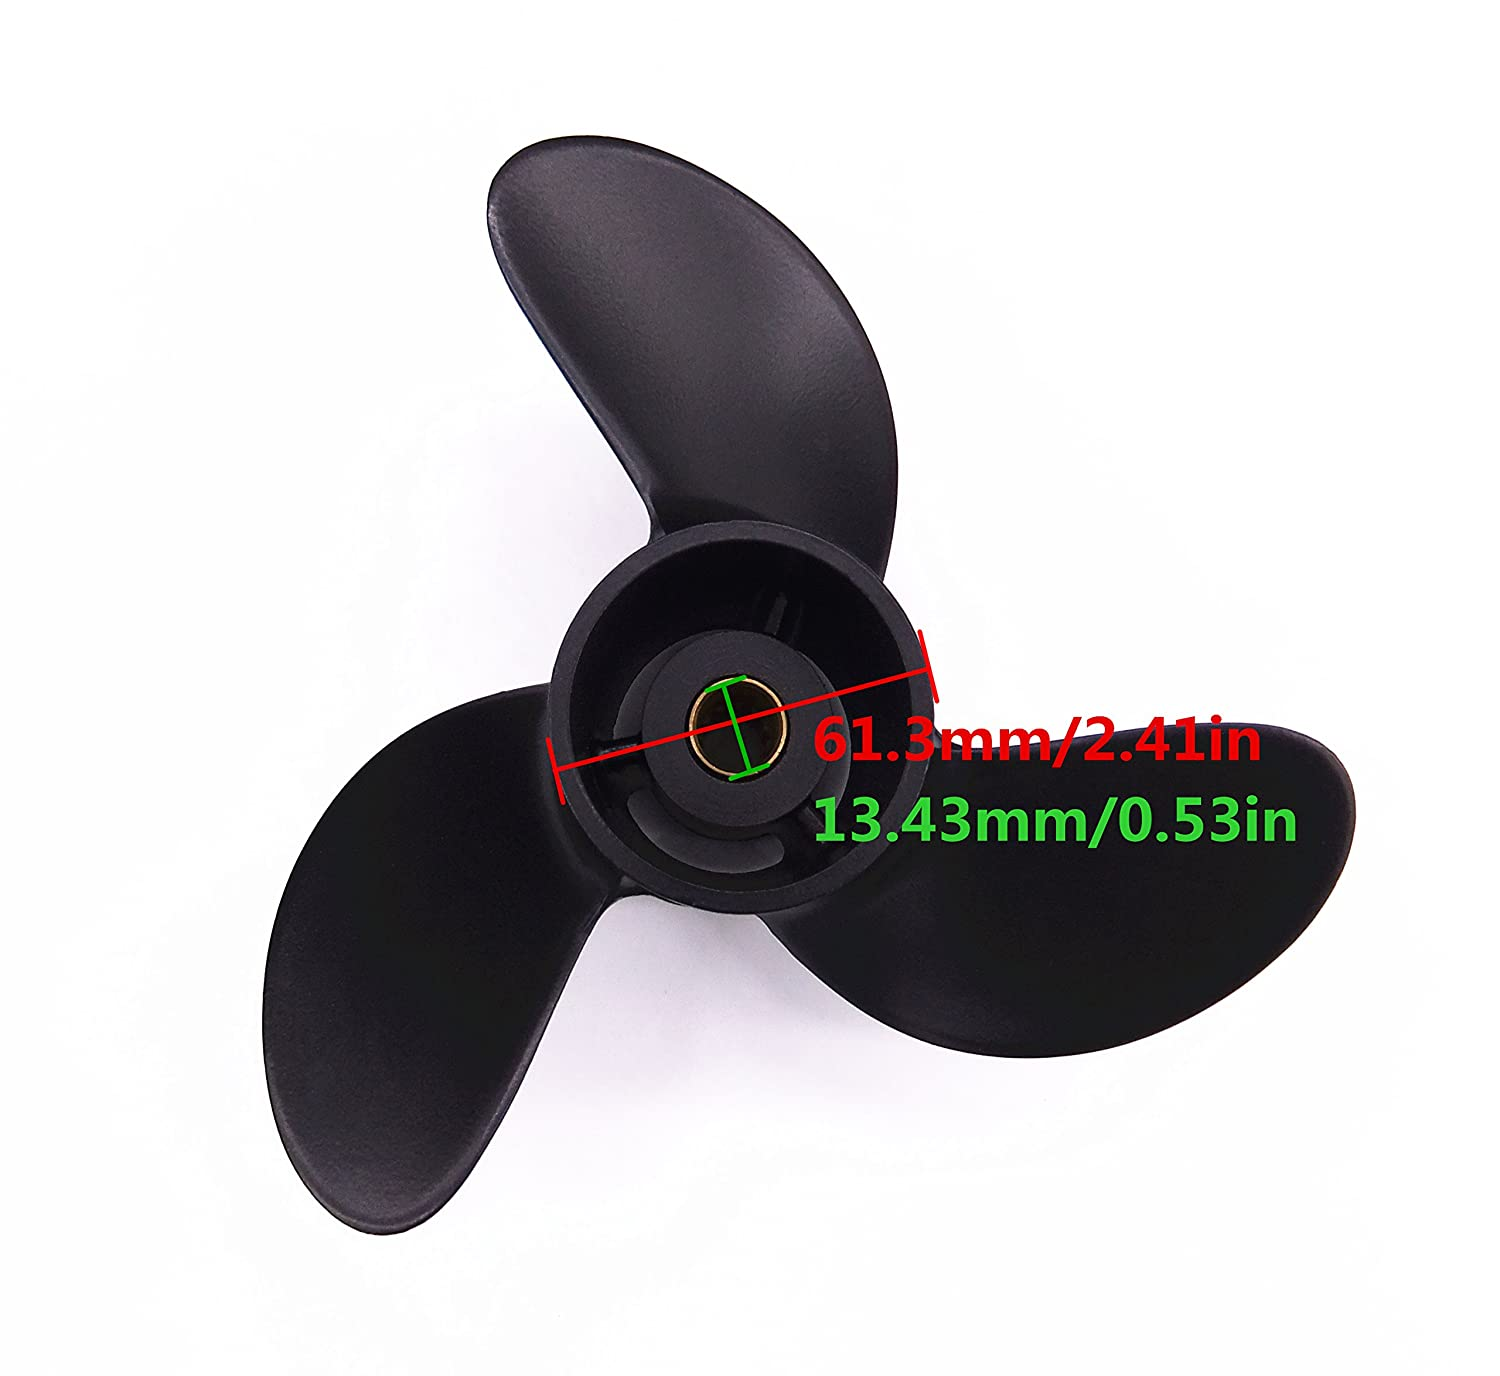 Mercury 2-Stroke 5HP 48-812950A02 Outboard Motors SouthMarine 7.8x8 Aluminium Alloy Propeller for Tohatsu//Nissan 4HP 5HP 6HP 3R1-W64516-0 3R1W645160M